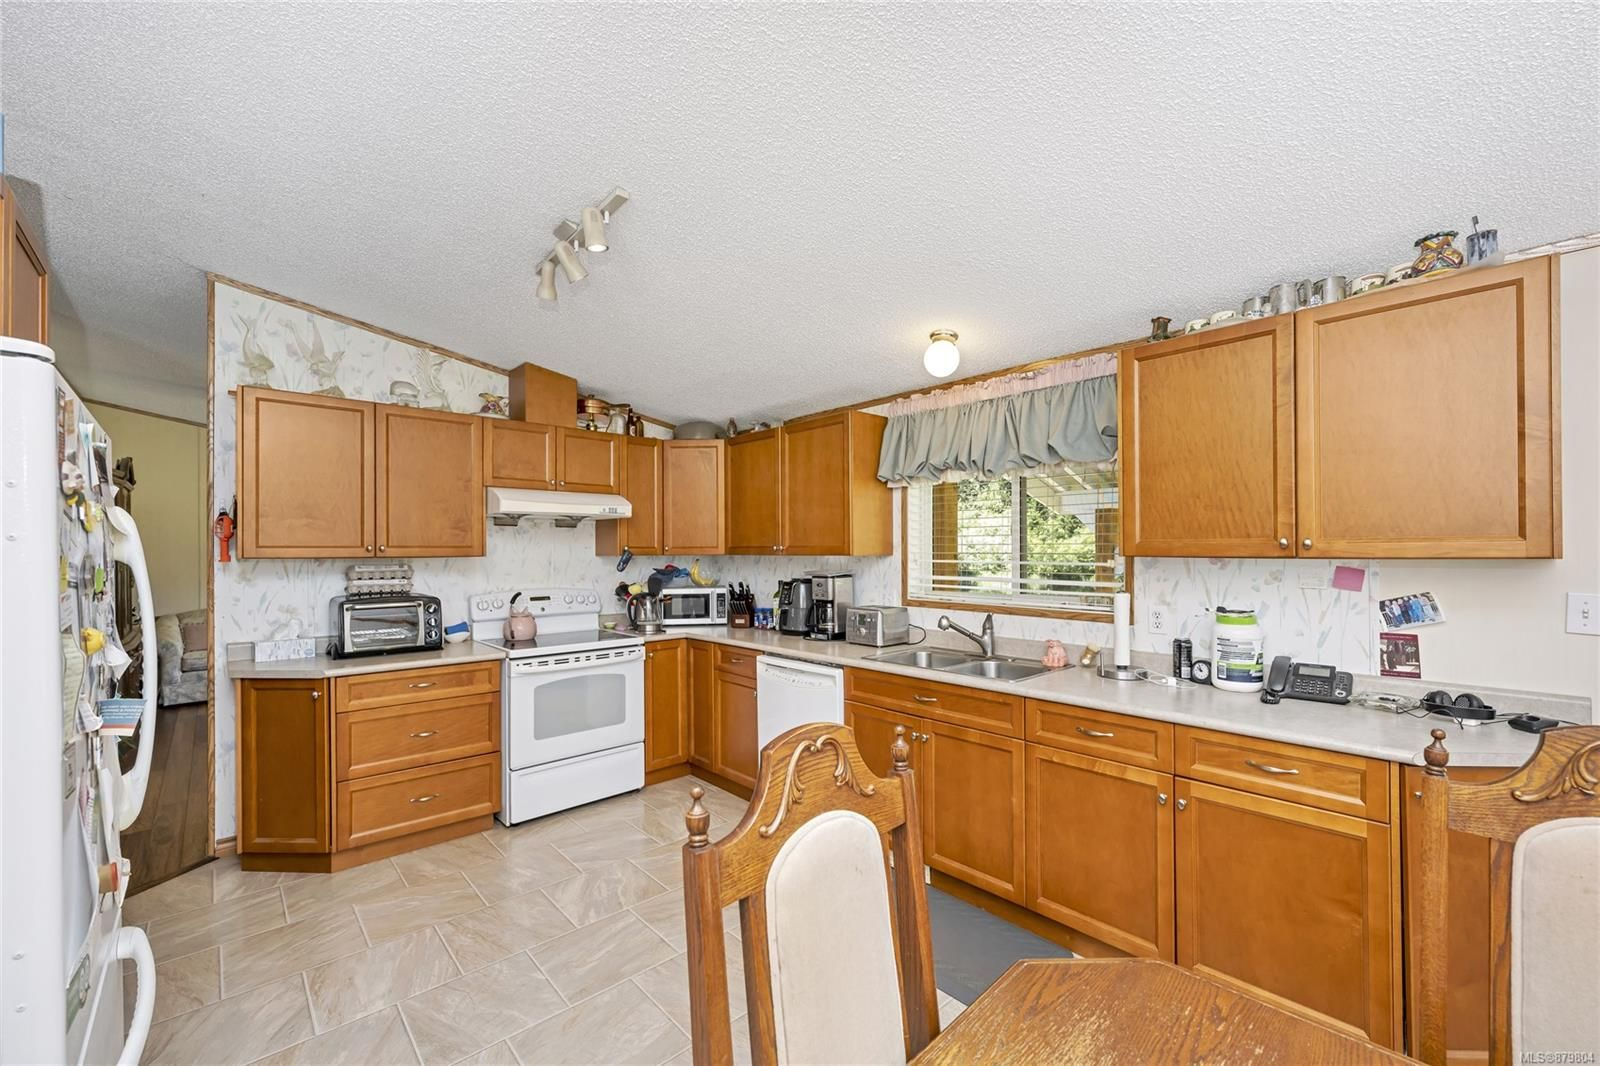 Photo 17: Photos: 3596 Riverside Rd in : ML Cobble Hill Manufactured Home for sale (Malahat & Area)  : MLS®# 879804